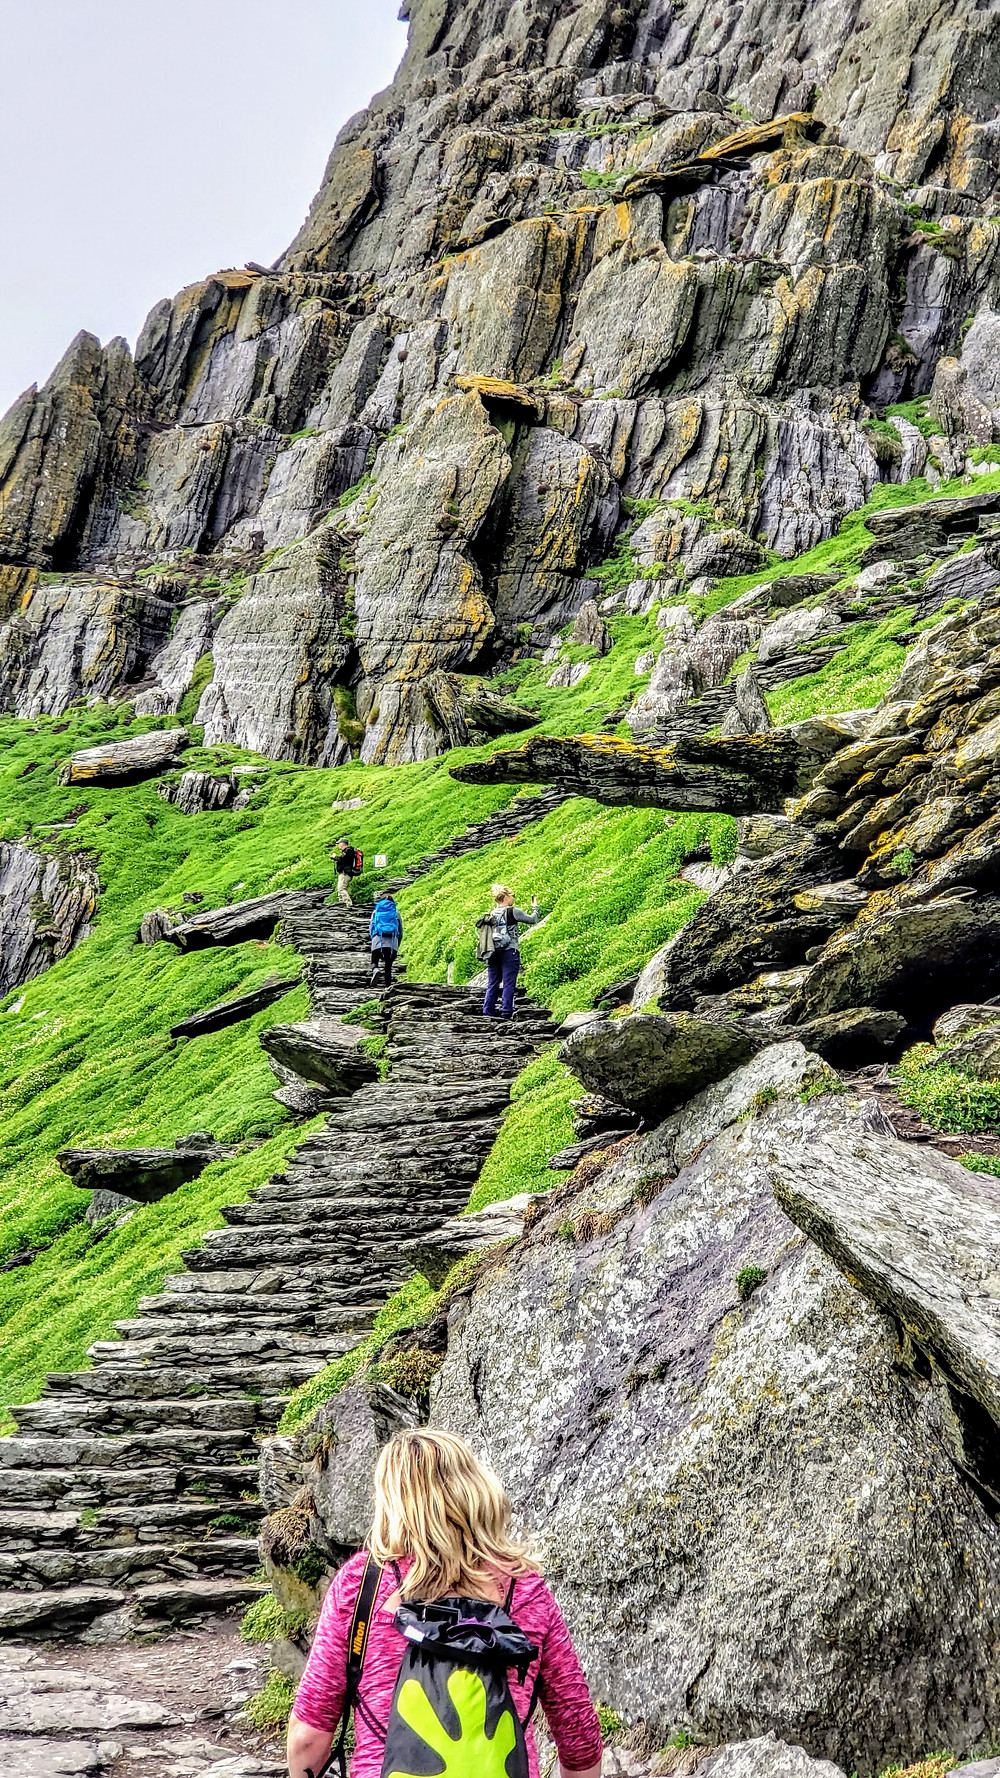 Skellig Michael, off the cost of the Kerry Peninsula in Ireland, ancient monk colony, Angie Kunze travel blogger, creative photographer Toto, We're Not in Kansas Anymore.